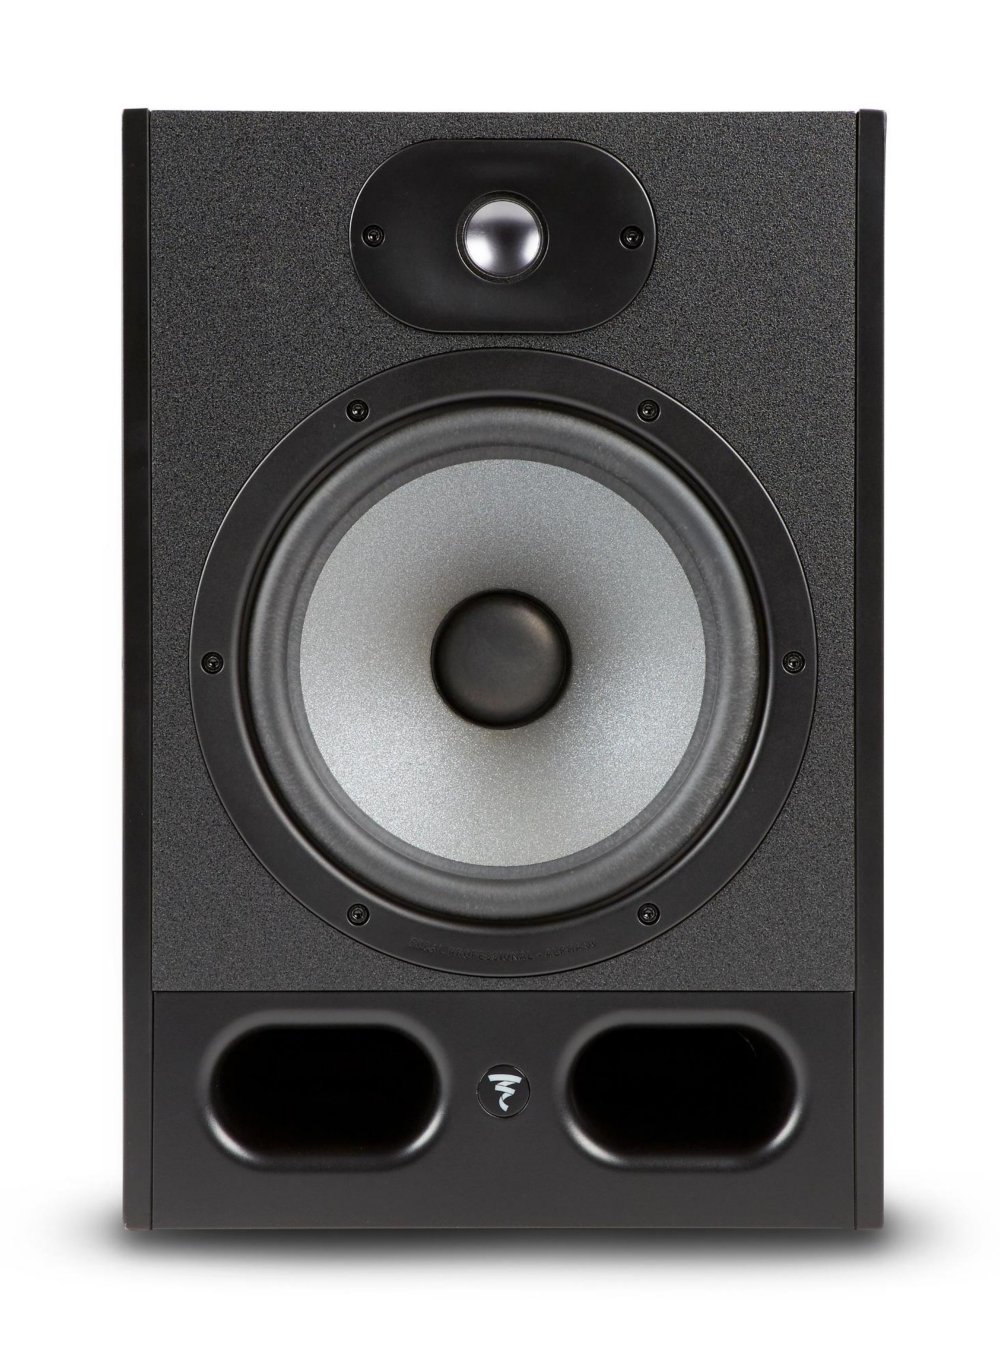 10 best studio monitor speakers under 500 of 2019 reviewed homesthetics inspiring ideas. Black Bedroom Furniture Sets. Home Design Ideas